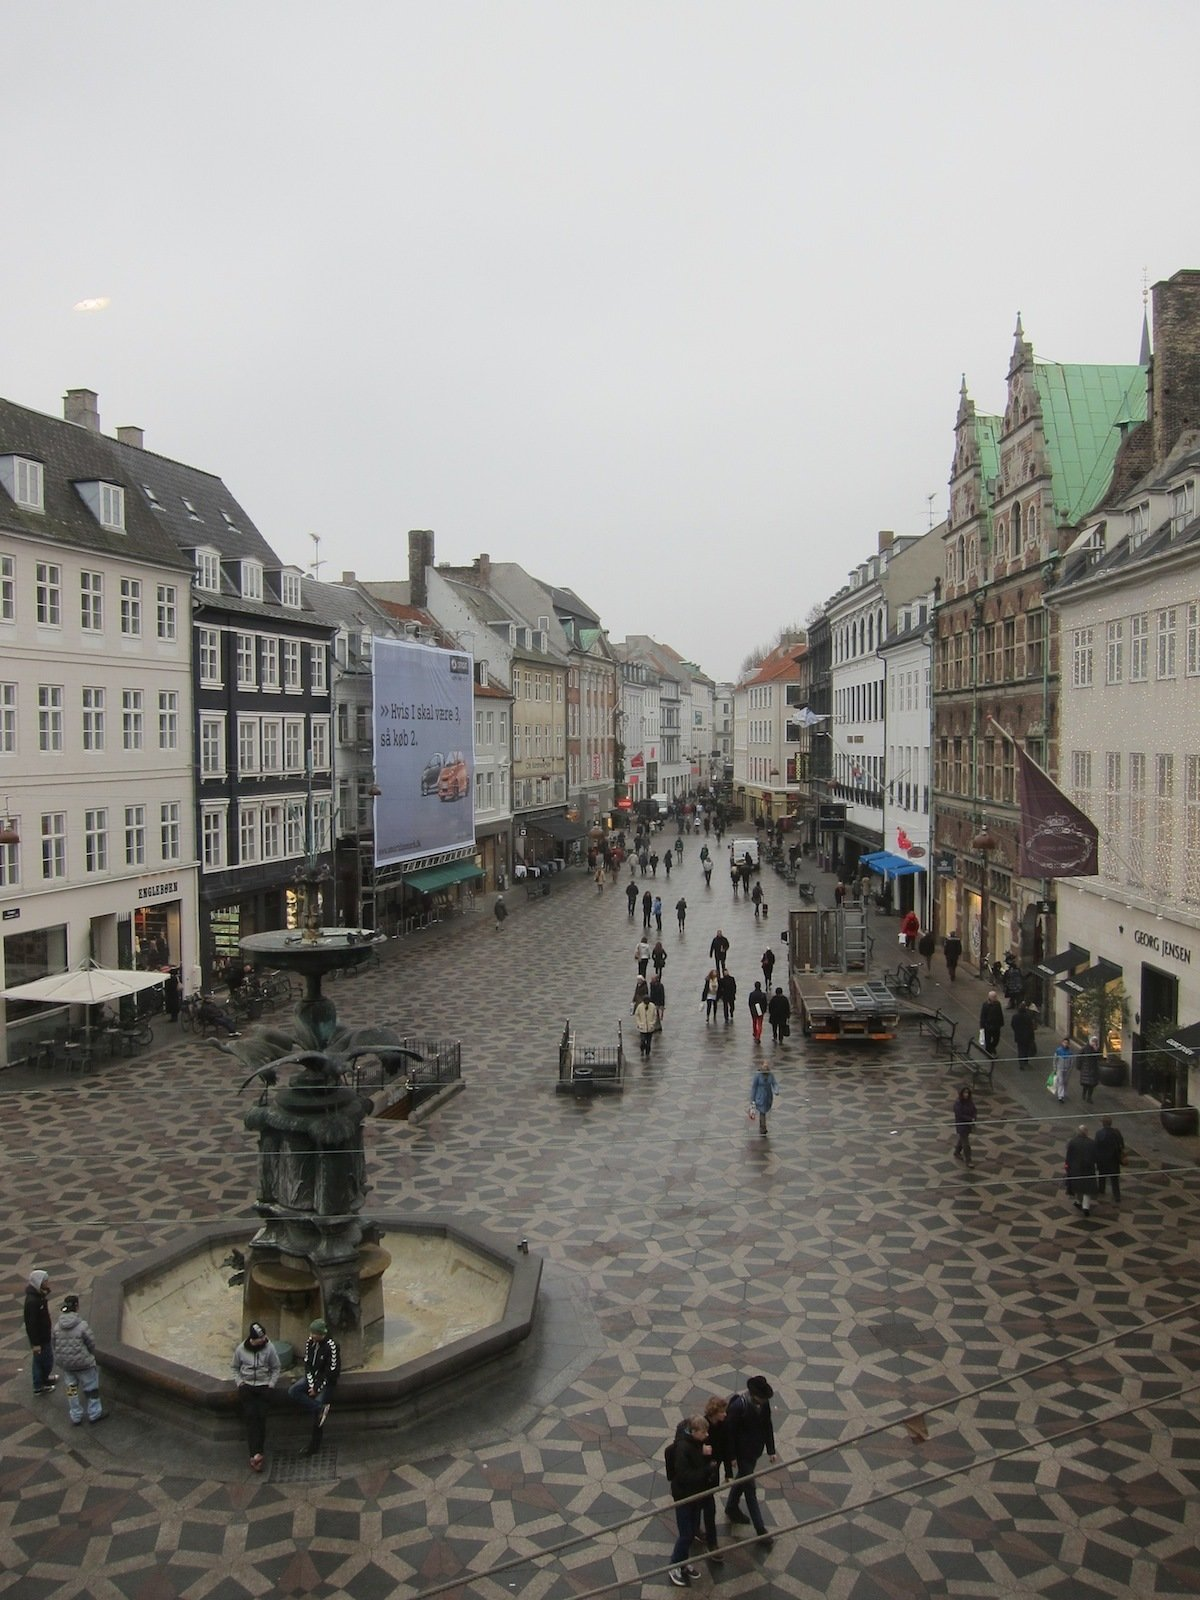 The shop overlooks the city's main shopping street, with pretty paving and high-end shops tucked into grand historic buildings. This is the view from one of Hay's windows. It's a strenuously charming city even on the grayest day.  A Visit to HAY Copenhagen by Jaime Gillin